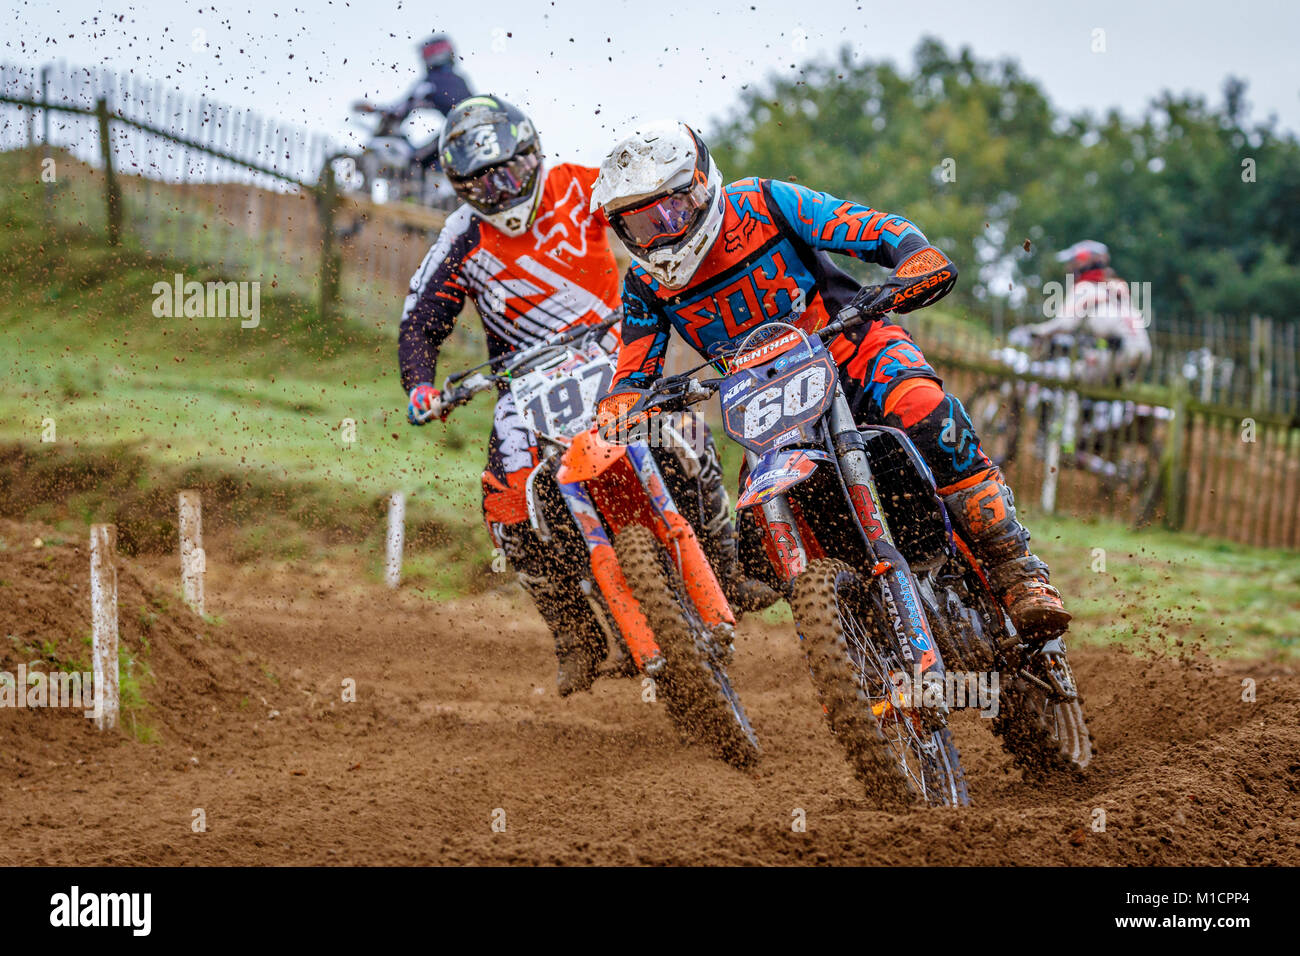 Aaron Framingham on the Fabrican Engineering KTM 250 at the NGR & ACU Eastern EVO Solo Motocross Championships, Stock Photo